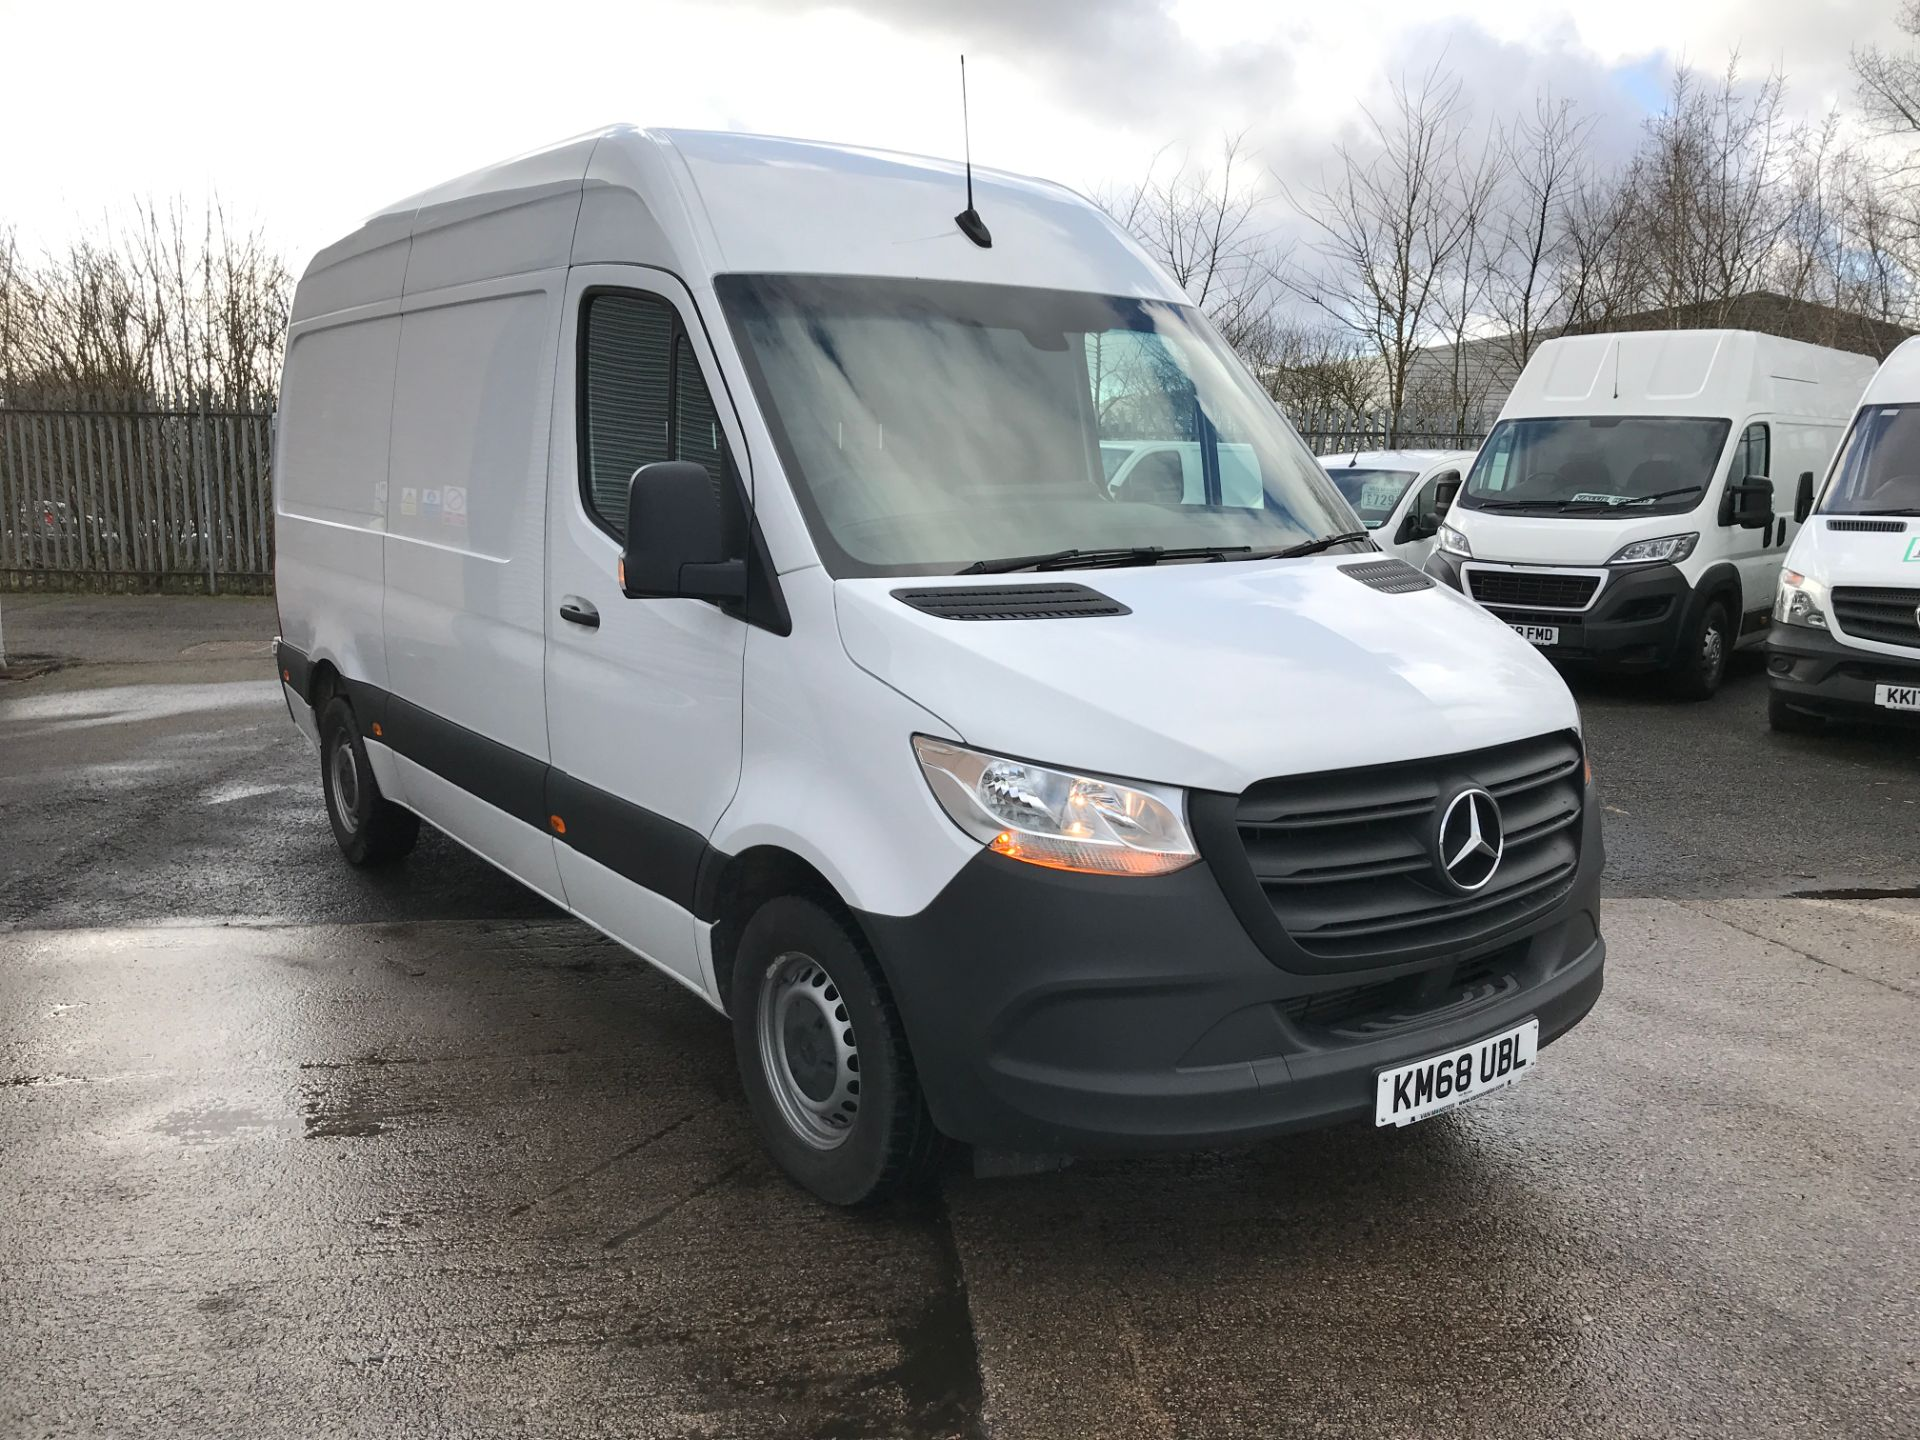 2018 Mercedes-Benz Sprinter 314CDI L2 H2 140PS EURO 6 (KM68UBL) Thumbnail 1